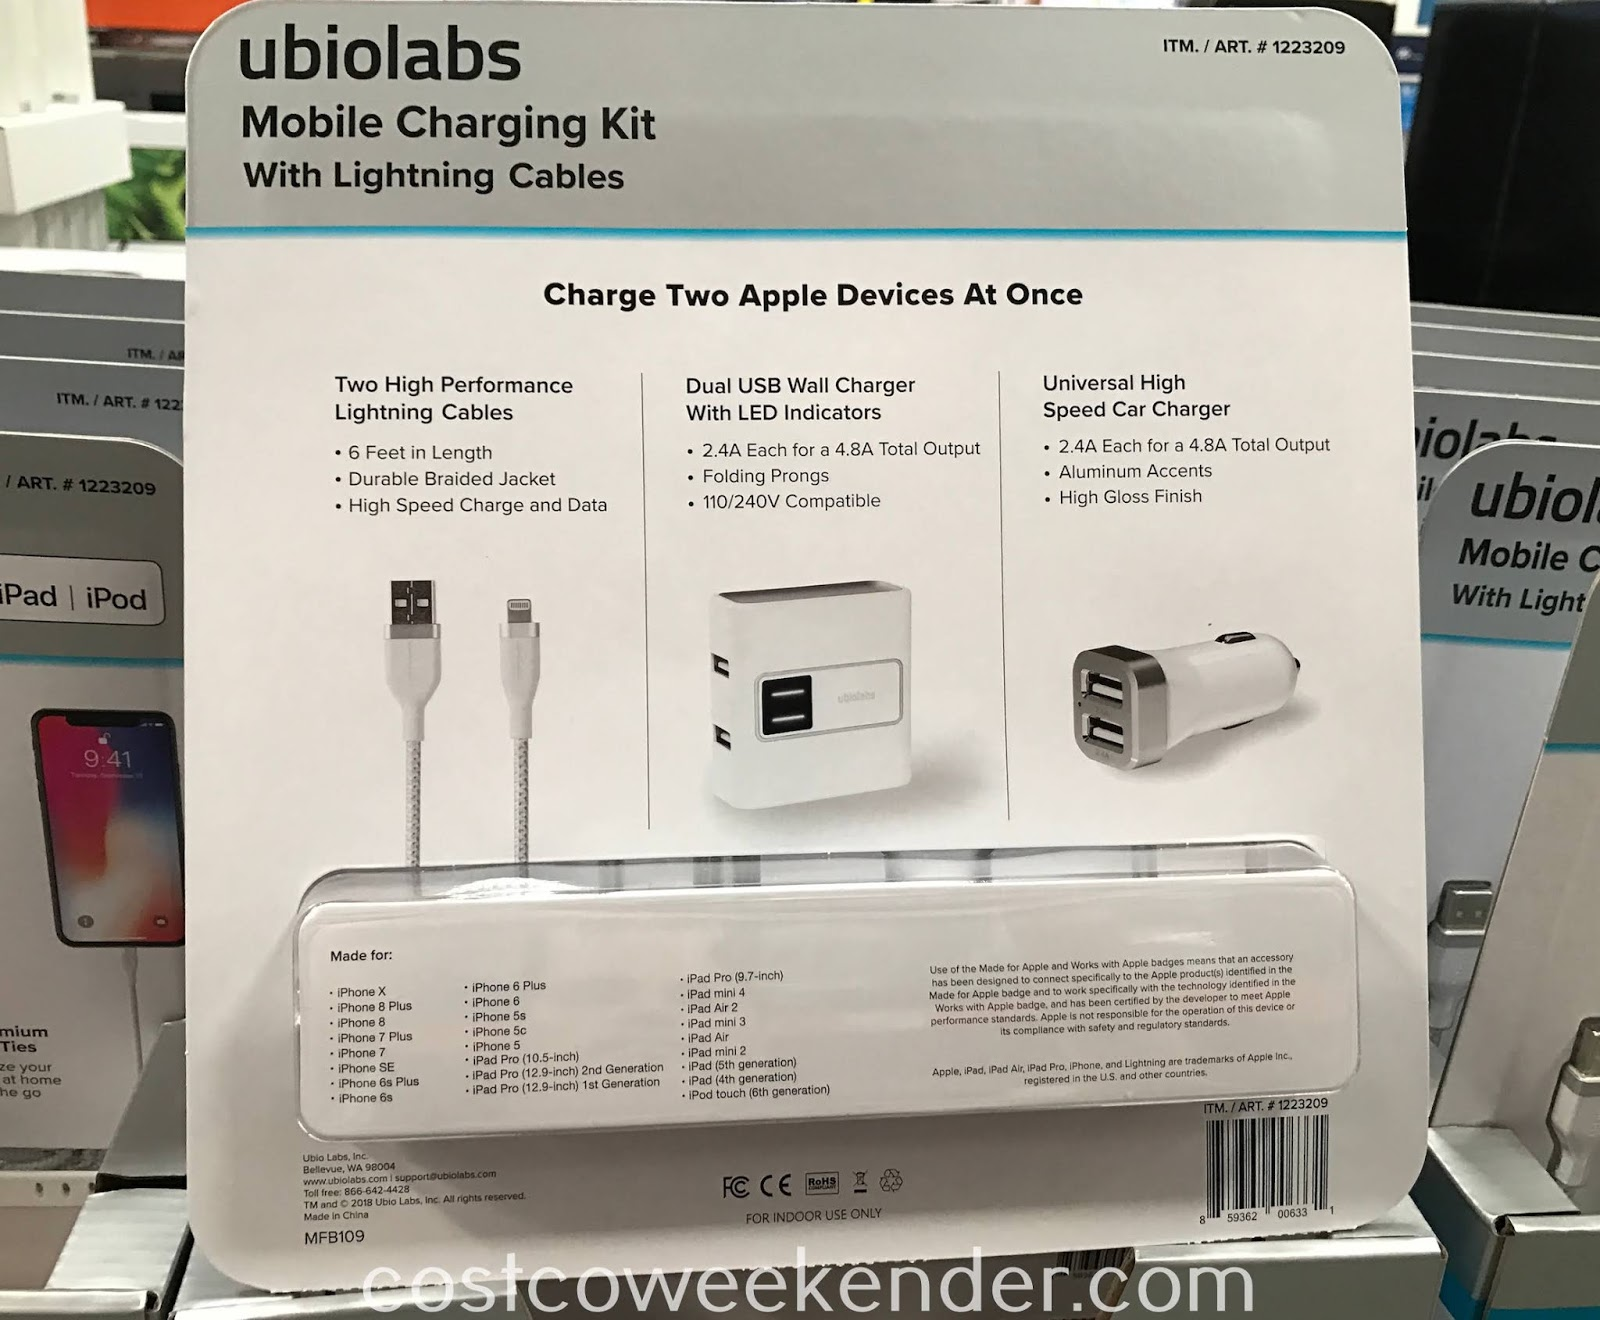 Costco 1223209 - Ubio Labs Mobile Charging Kit: you can never have too many power cables for your Apple iPhone